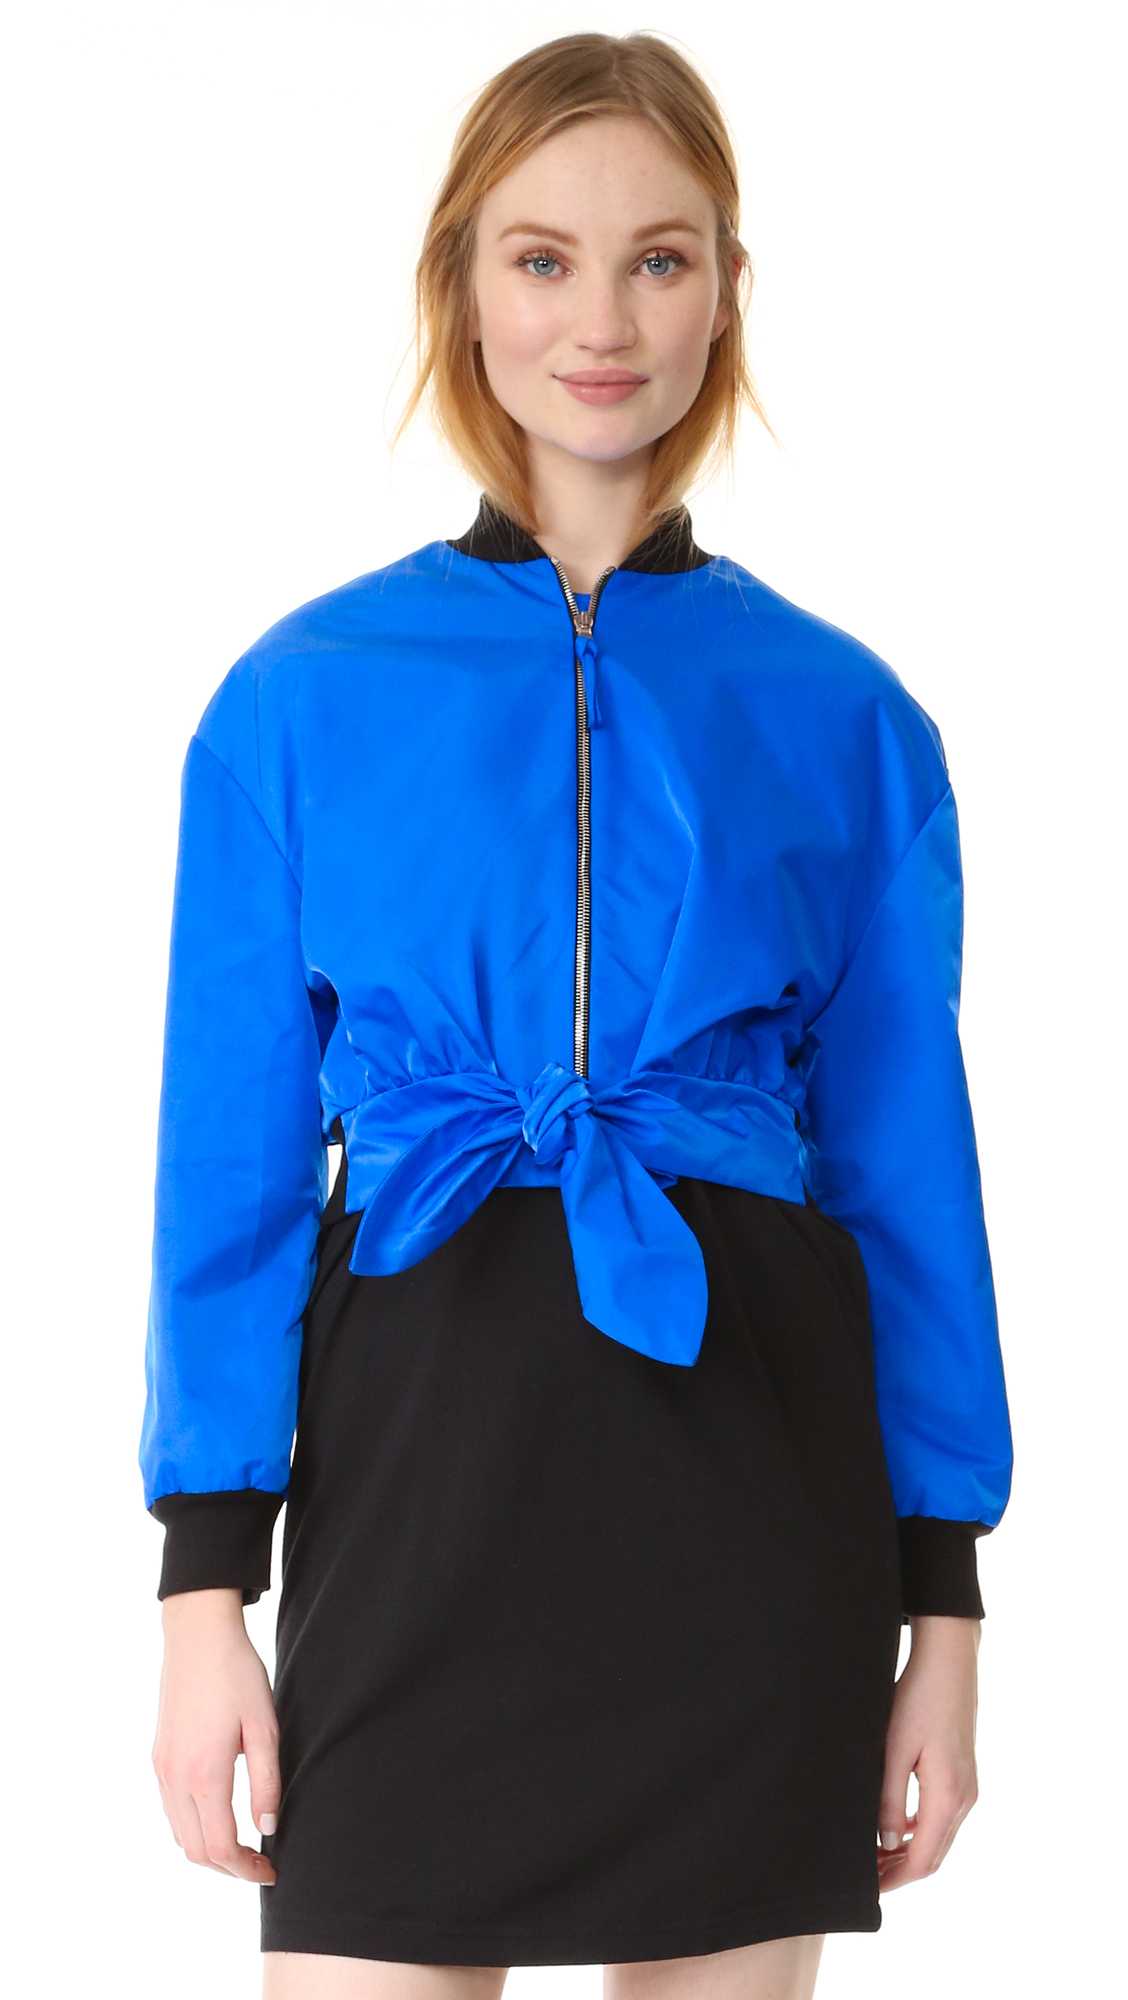 Knotted sashes cinch the cropped waist of this crisp Moschino jacket. Contrast, ribbed edges. Exposed front zip. Long sleeves. Lined. Fabric: Technical weave. Shell: 100% polyamide. Trim: 91% cotton/8% polyamide/1% other fiber. Fill: 100% polyester. Dry clean. Made in